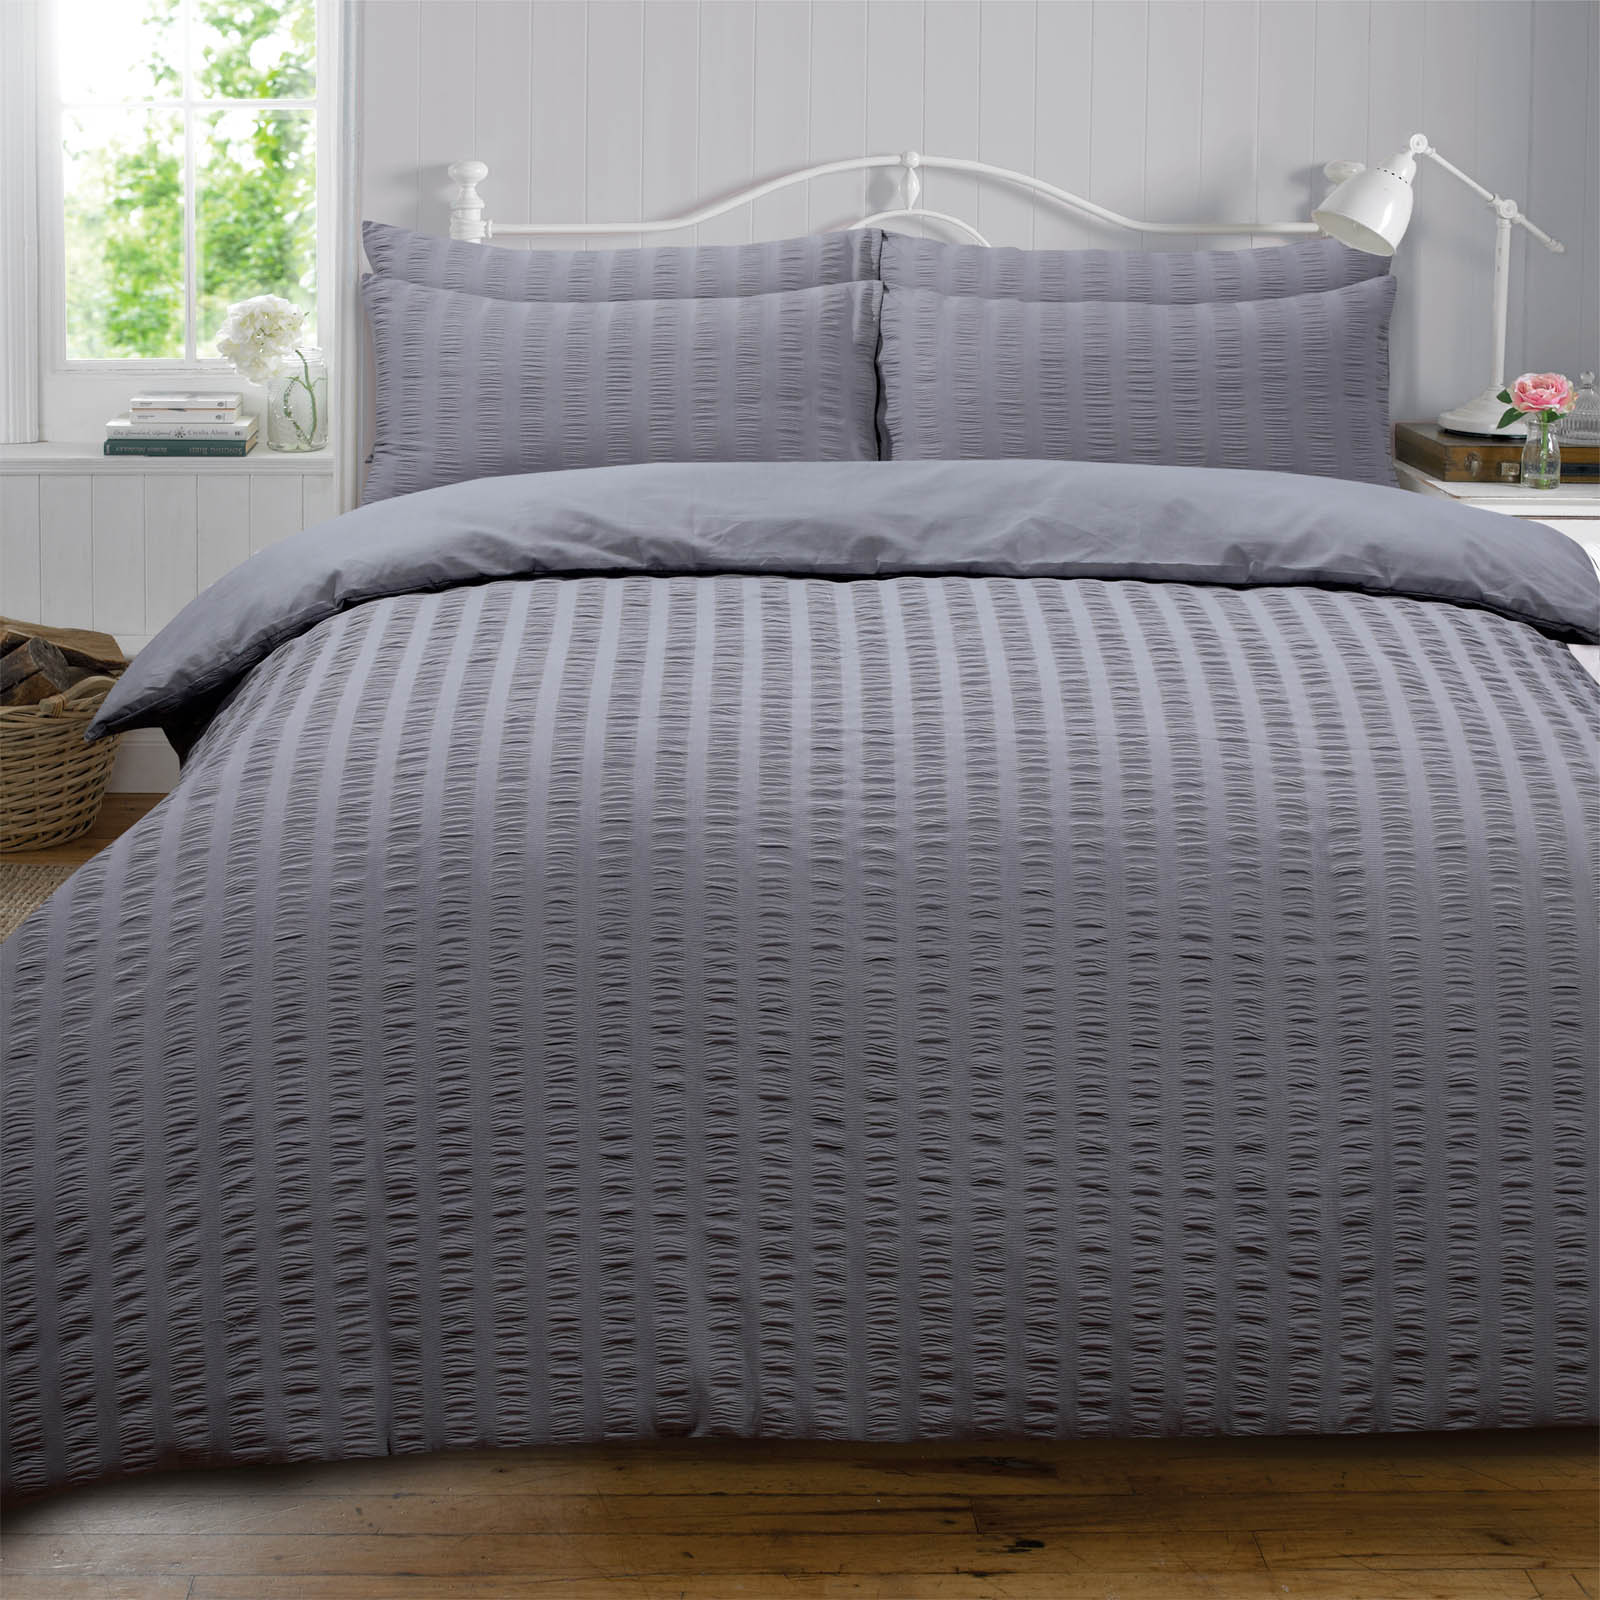 Highams-Seersucker-Duvet-Cover-with-Pillowcase-Bedding-Set-Silver-White-Charcoal